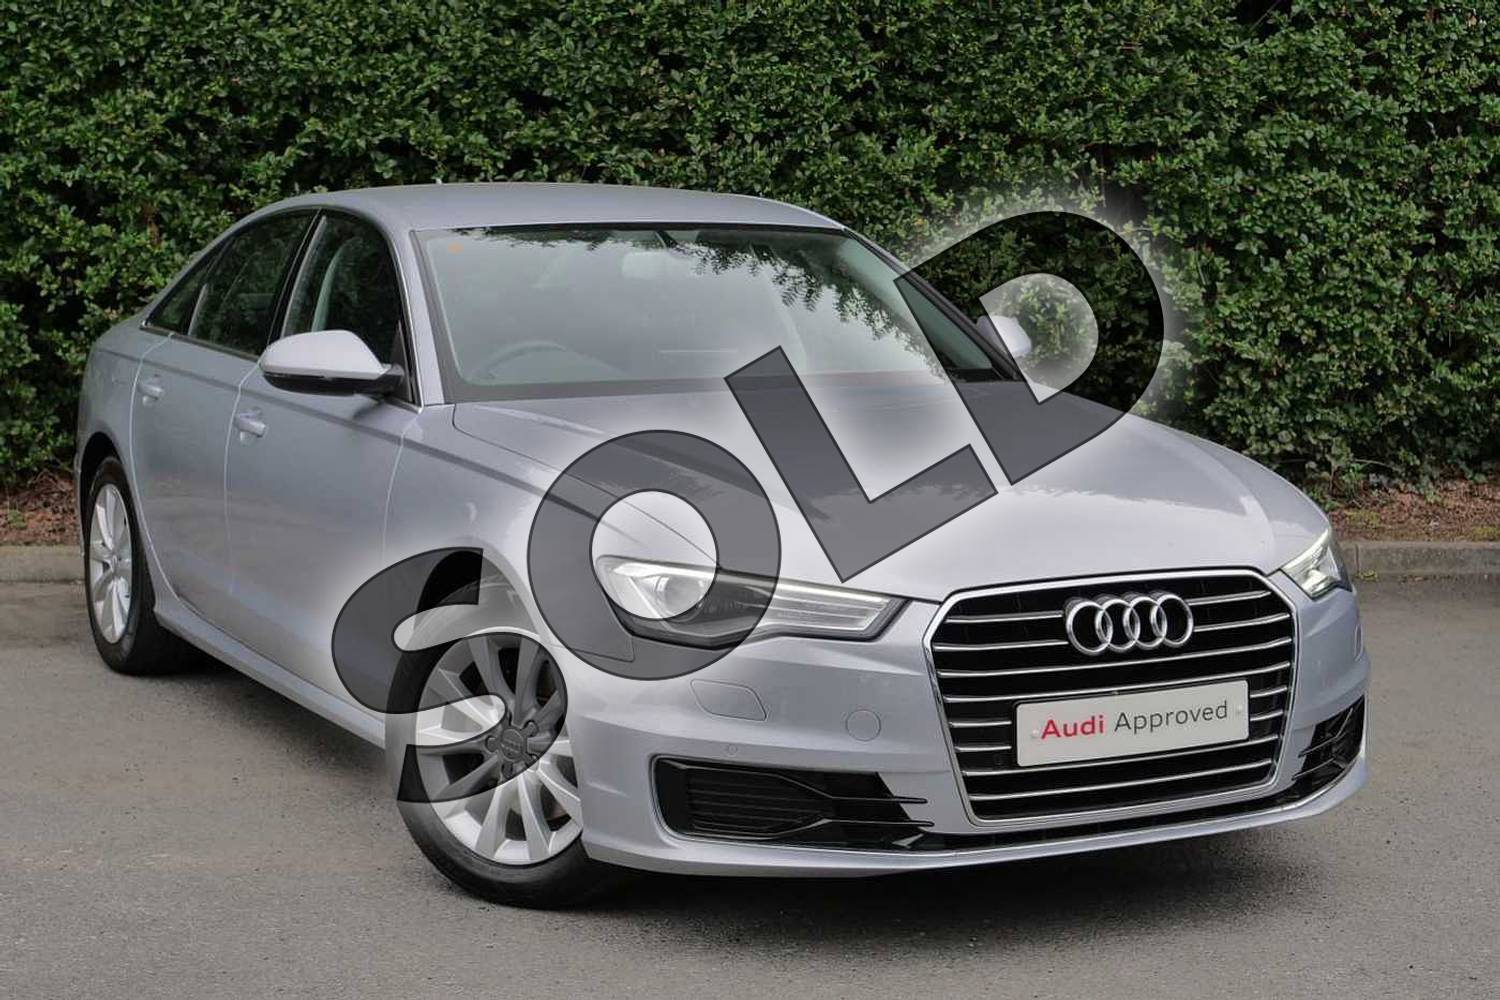 2015 Audi A6 Diesel Saloon Diesel 2.0 TDI Ultra SE 4dr S Tronic in Floret Silver, metallic at Worcester Audi